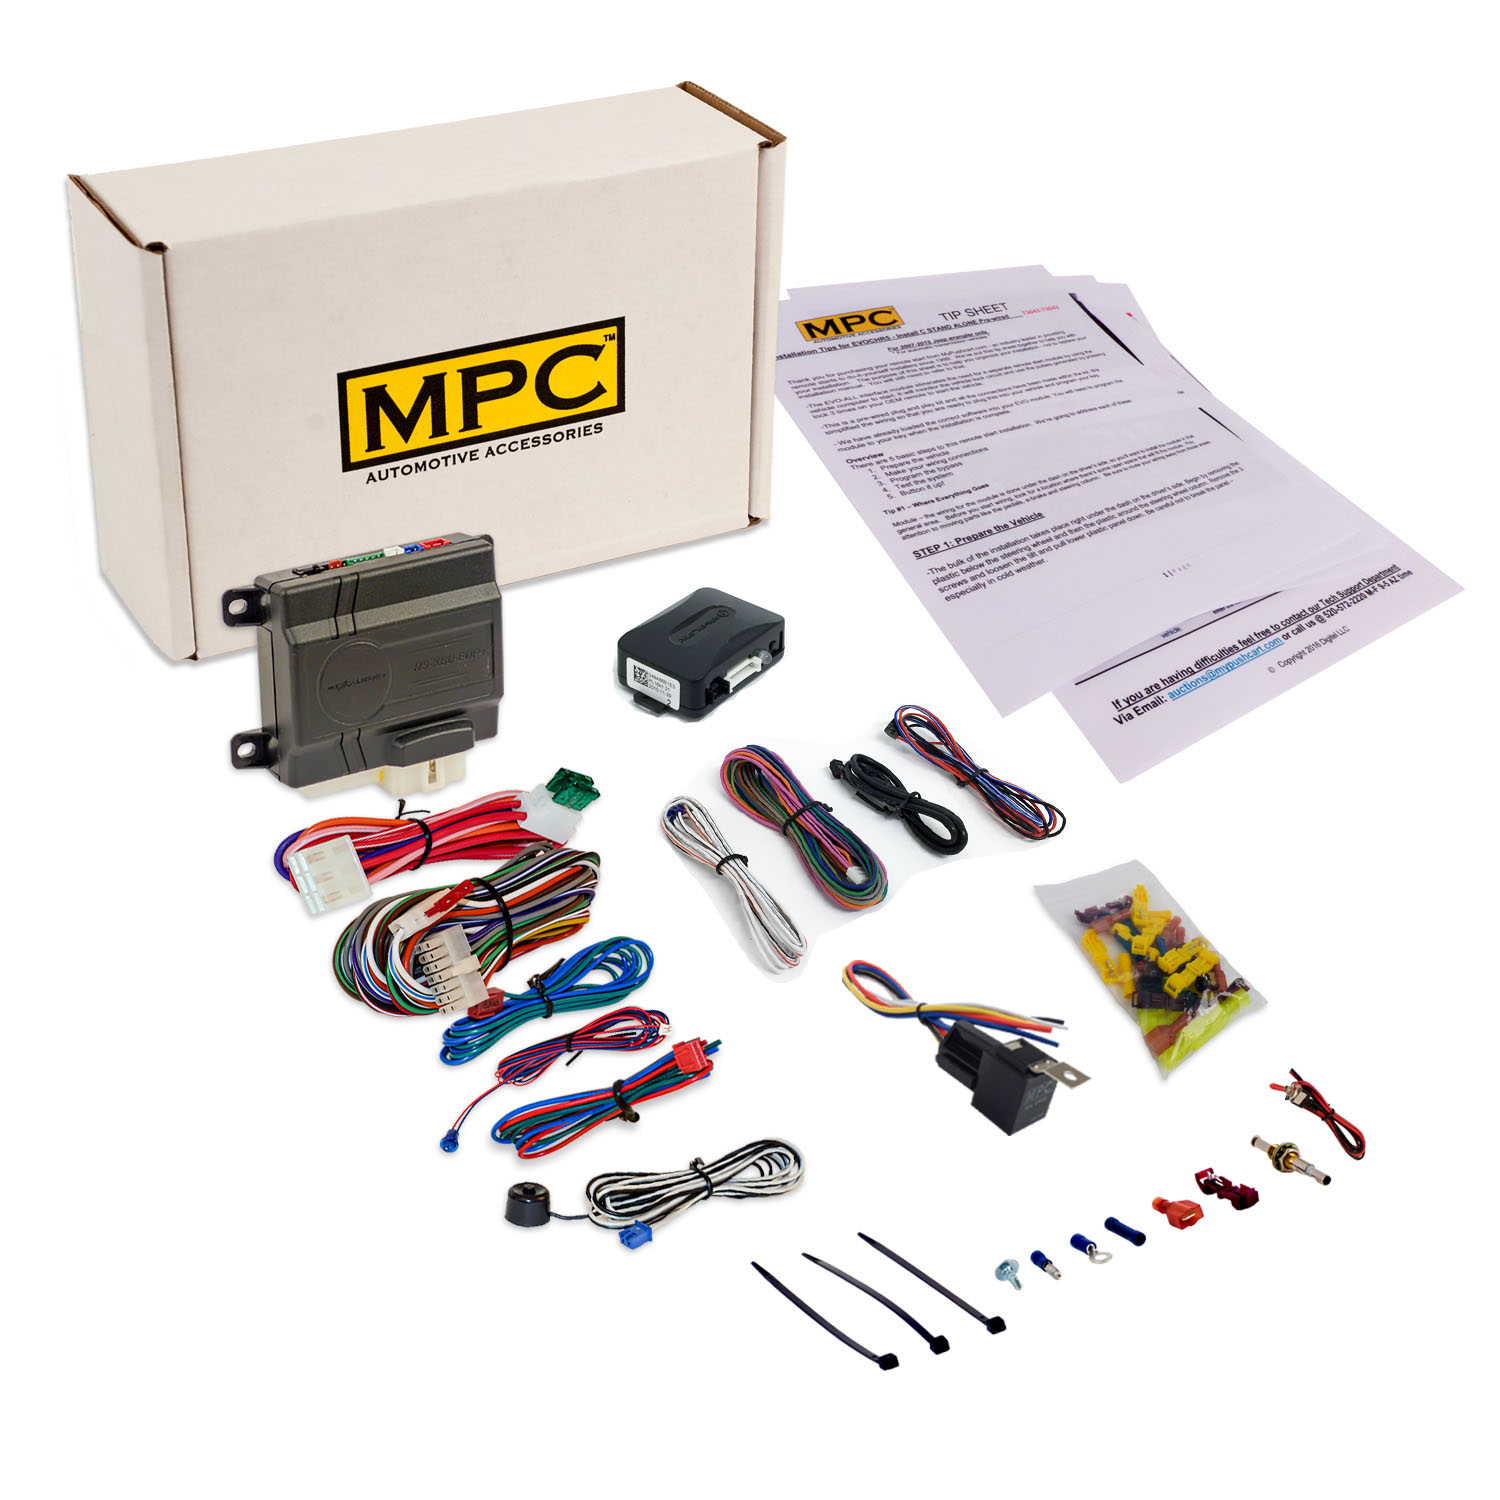 Add On Remote Start Kit For Gm Vehicles W Keyless Byp Module Uses Oem Fobs